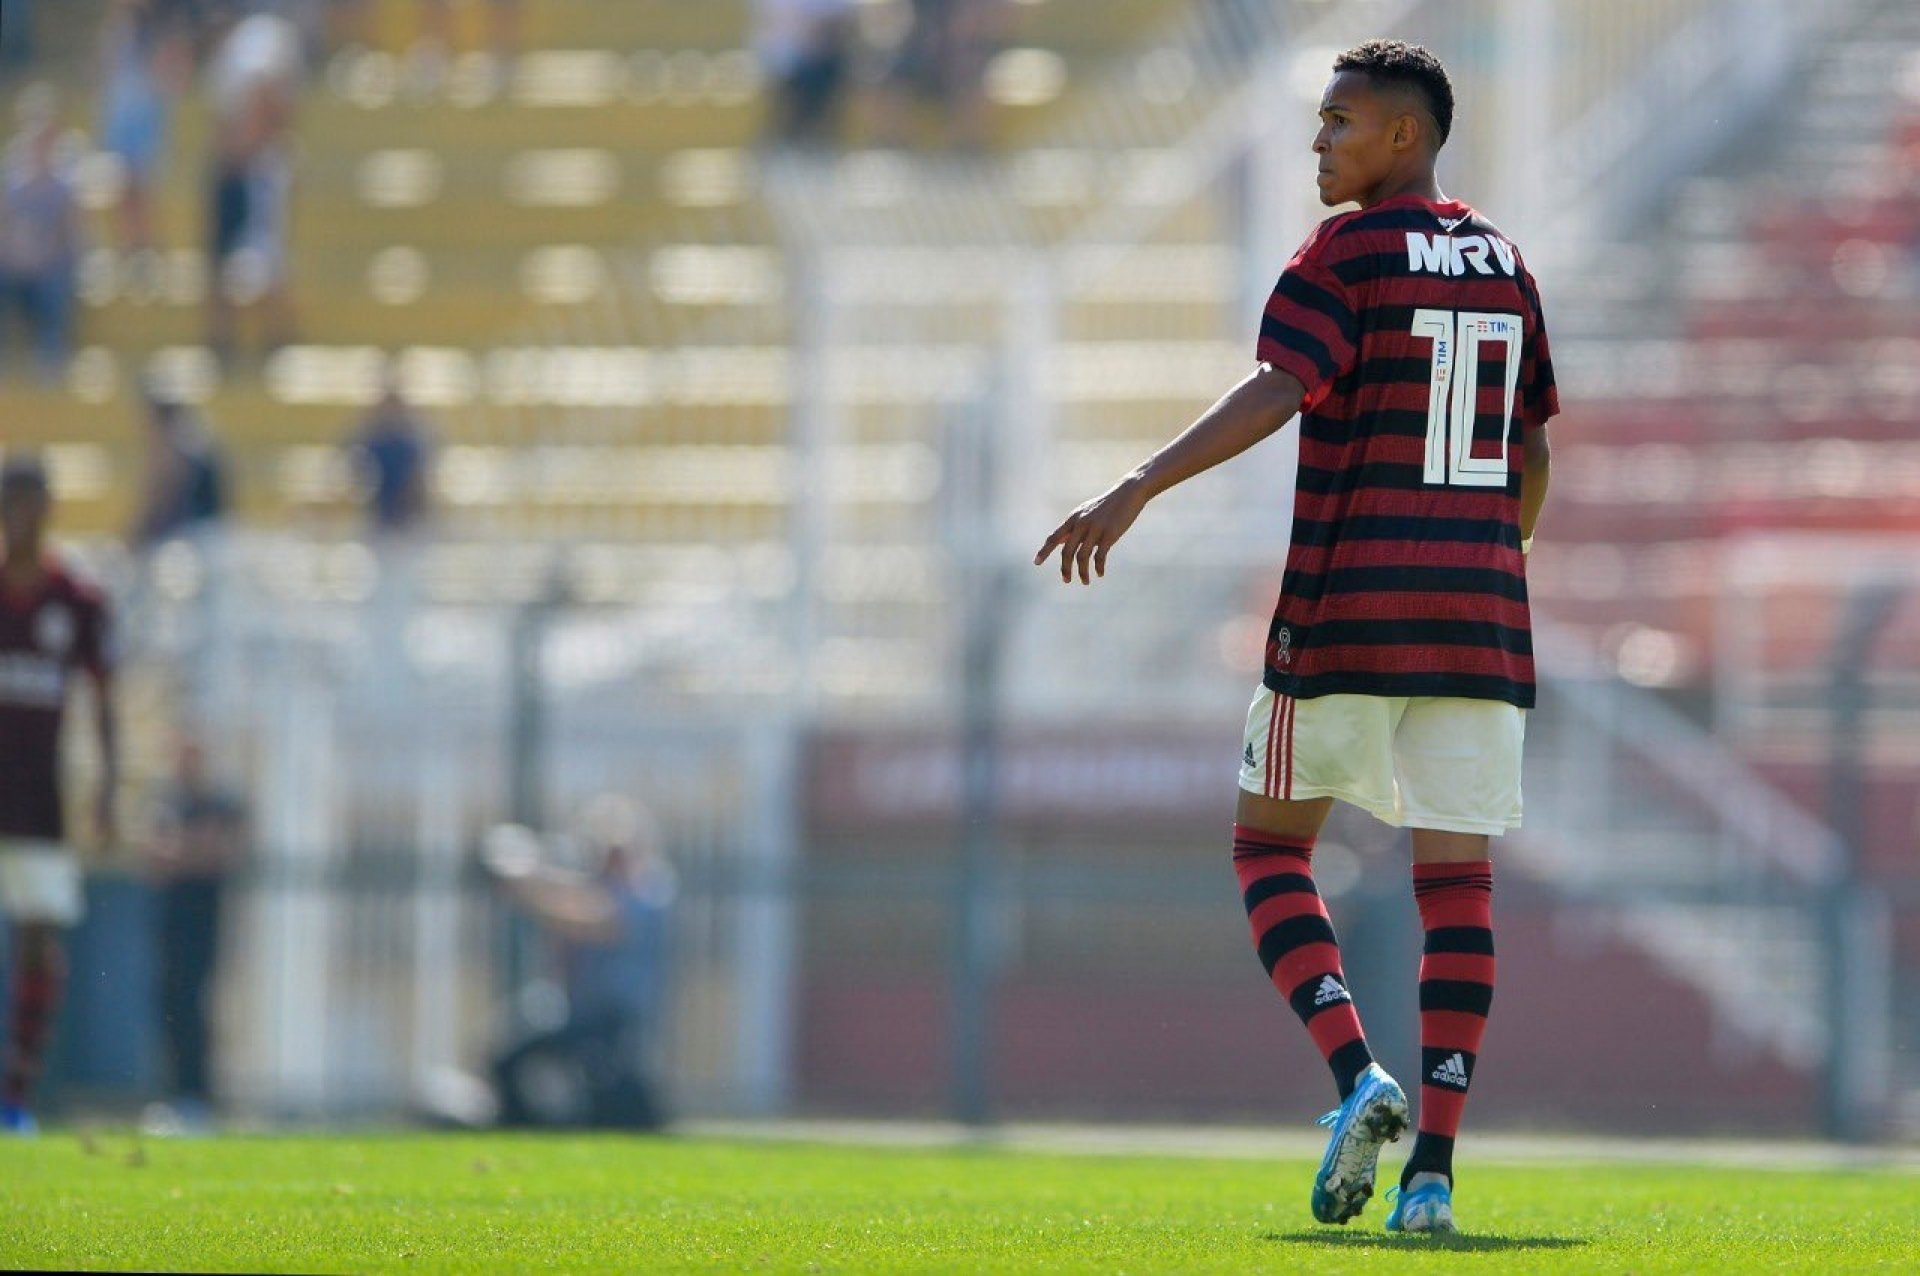 Lázaro is set as the newest gem on the Flamengo base - the clone